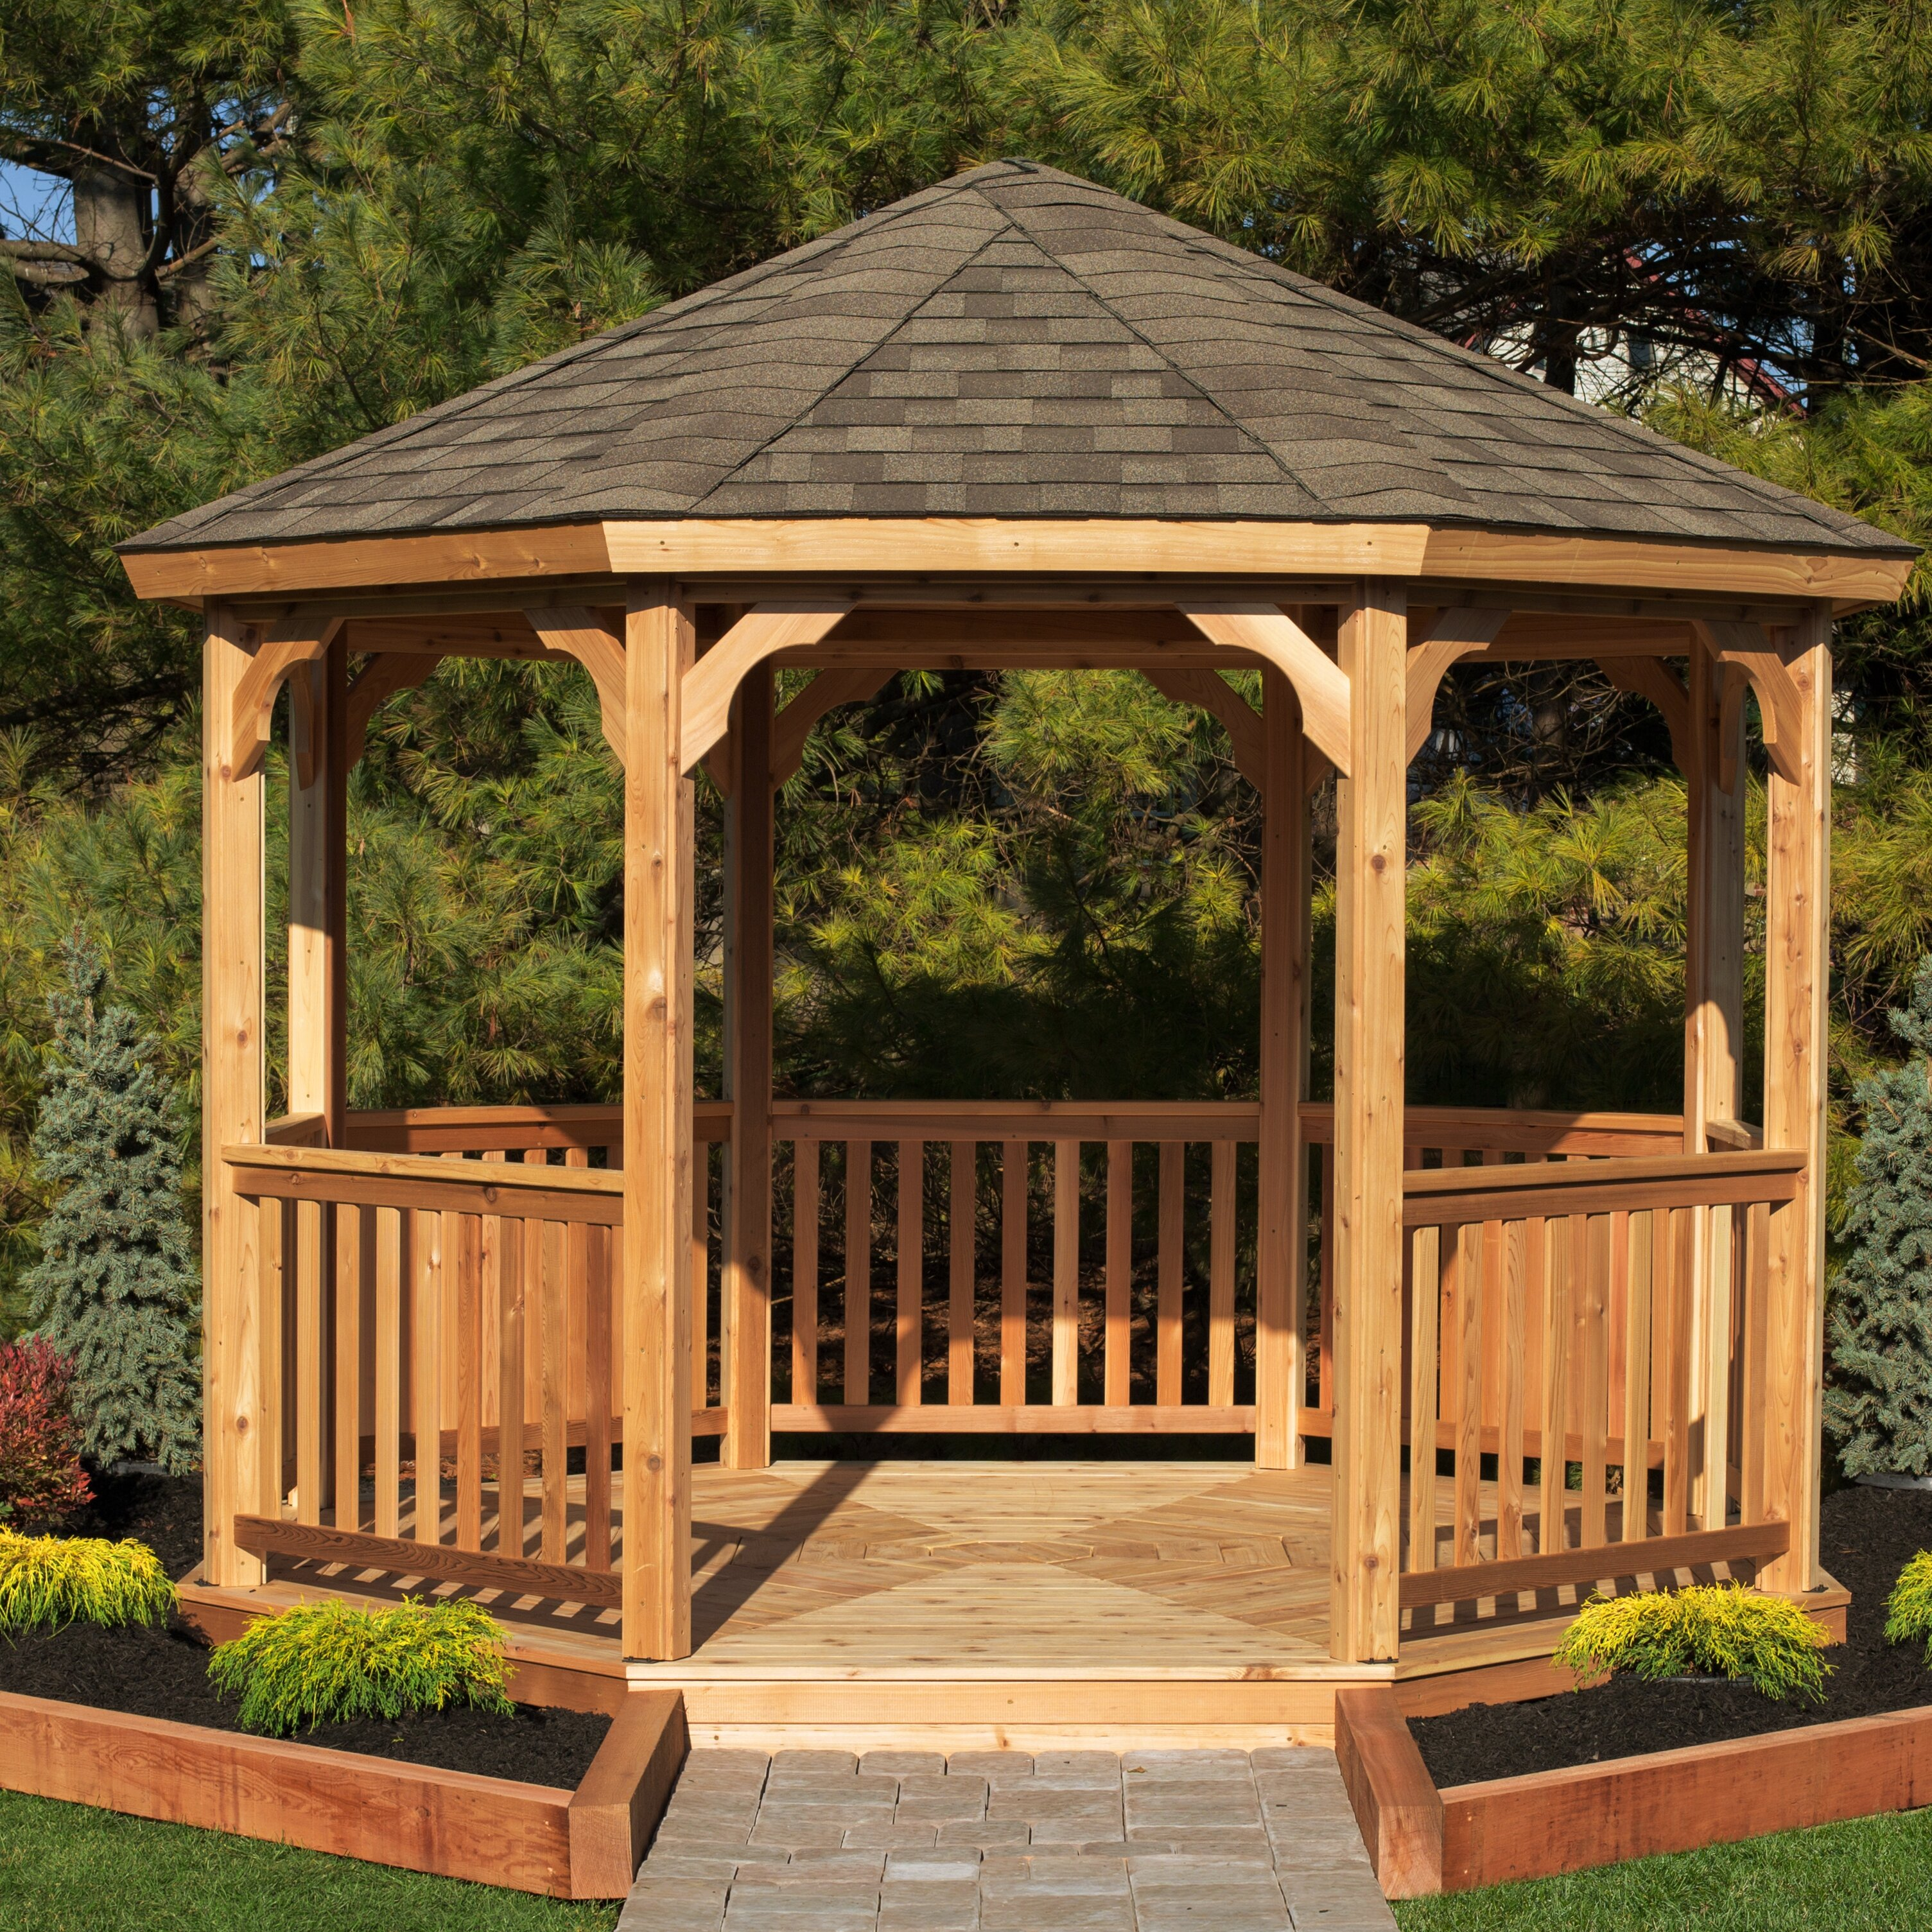 plastic wooden garden bins seating designs size pool wood inspirational seat deck chairs designer bench containers patio grass for large cabinet outdoor box artificial balcony chest wicker black london full modern seats hardwood furniture with storage toy cushion backyard of outside benches